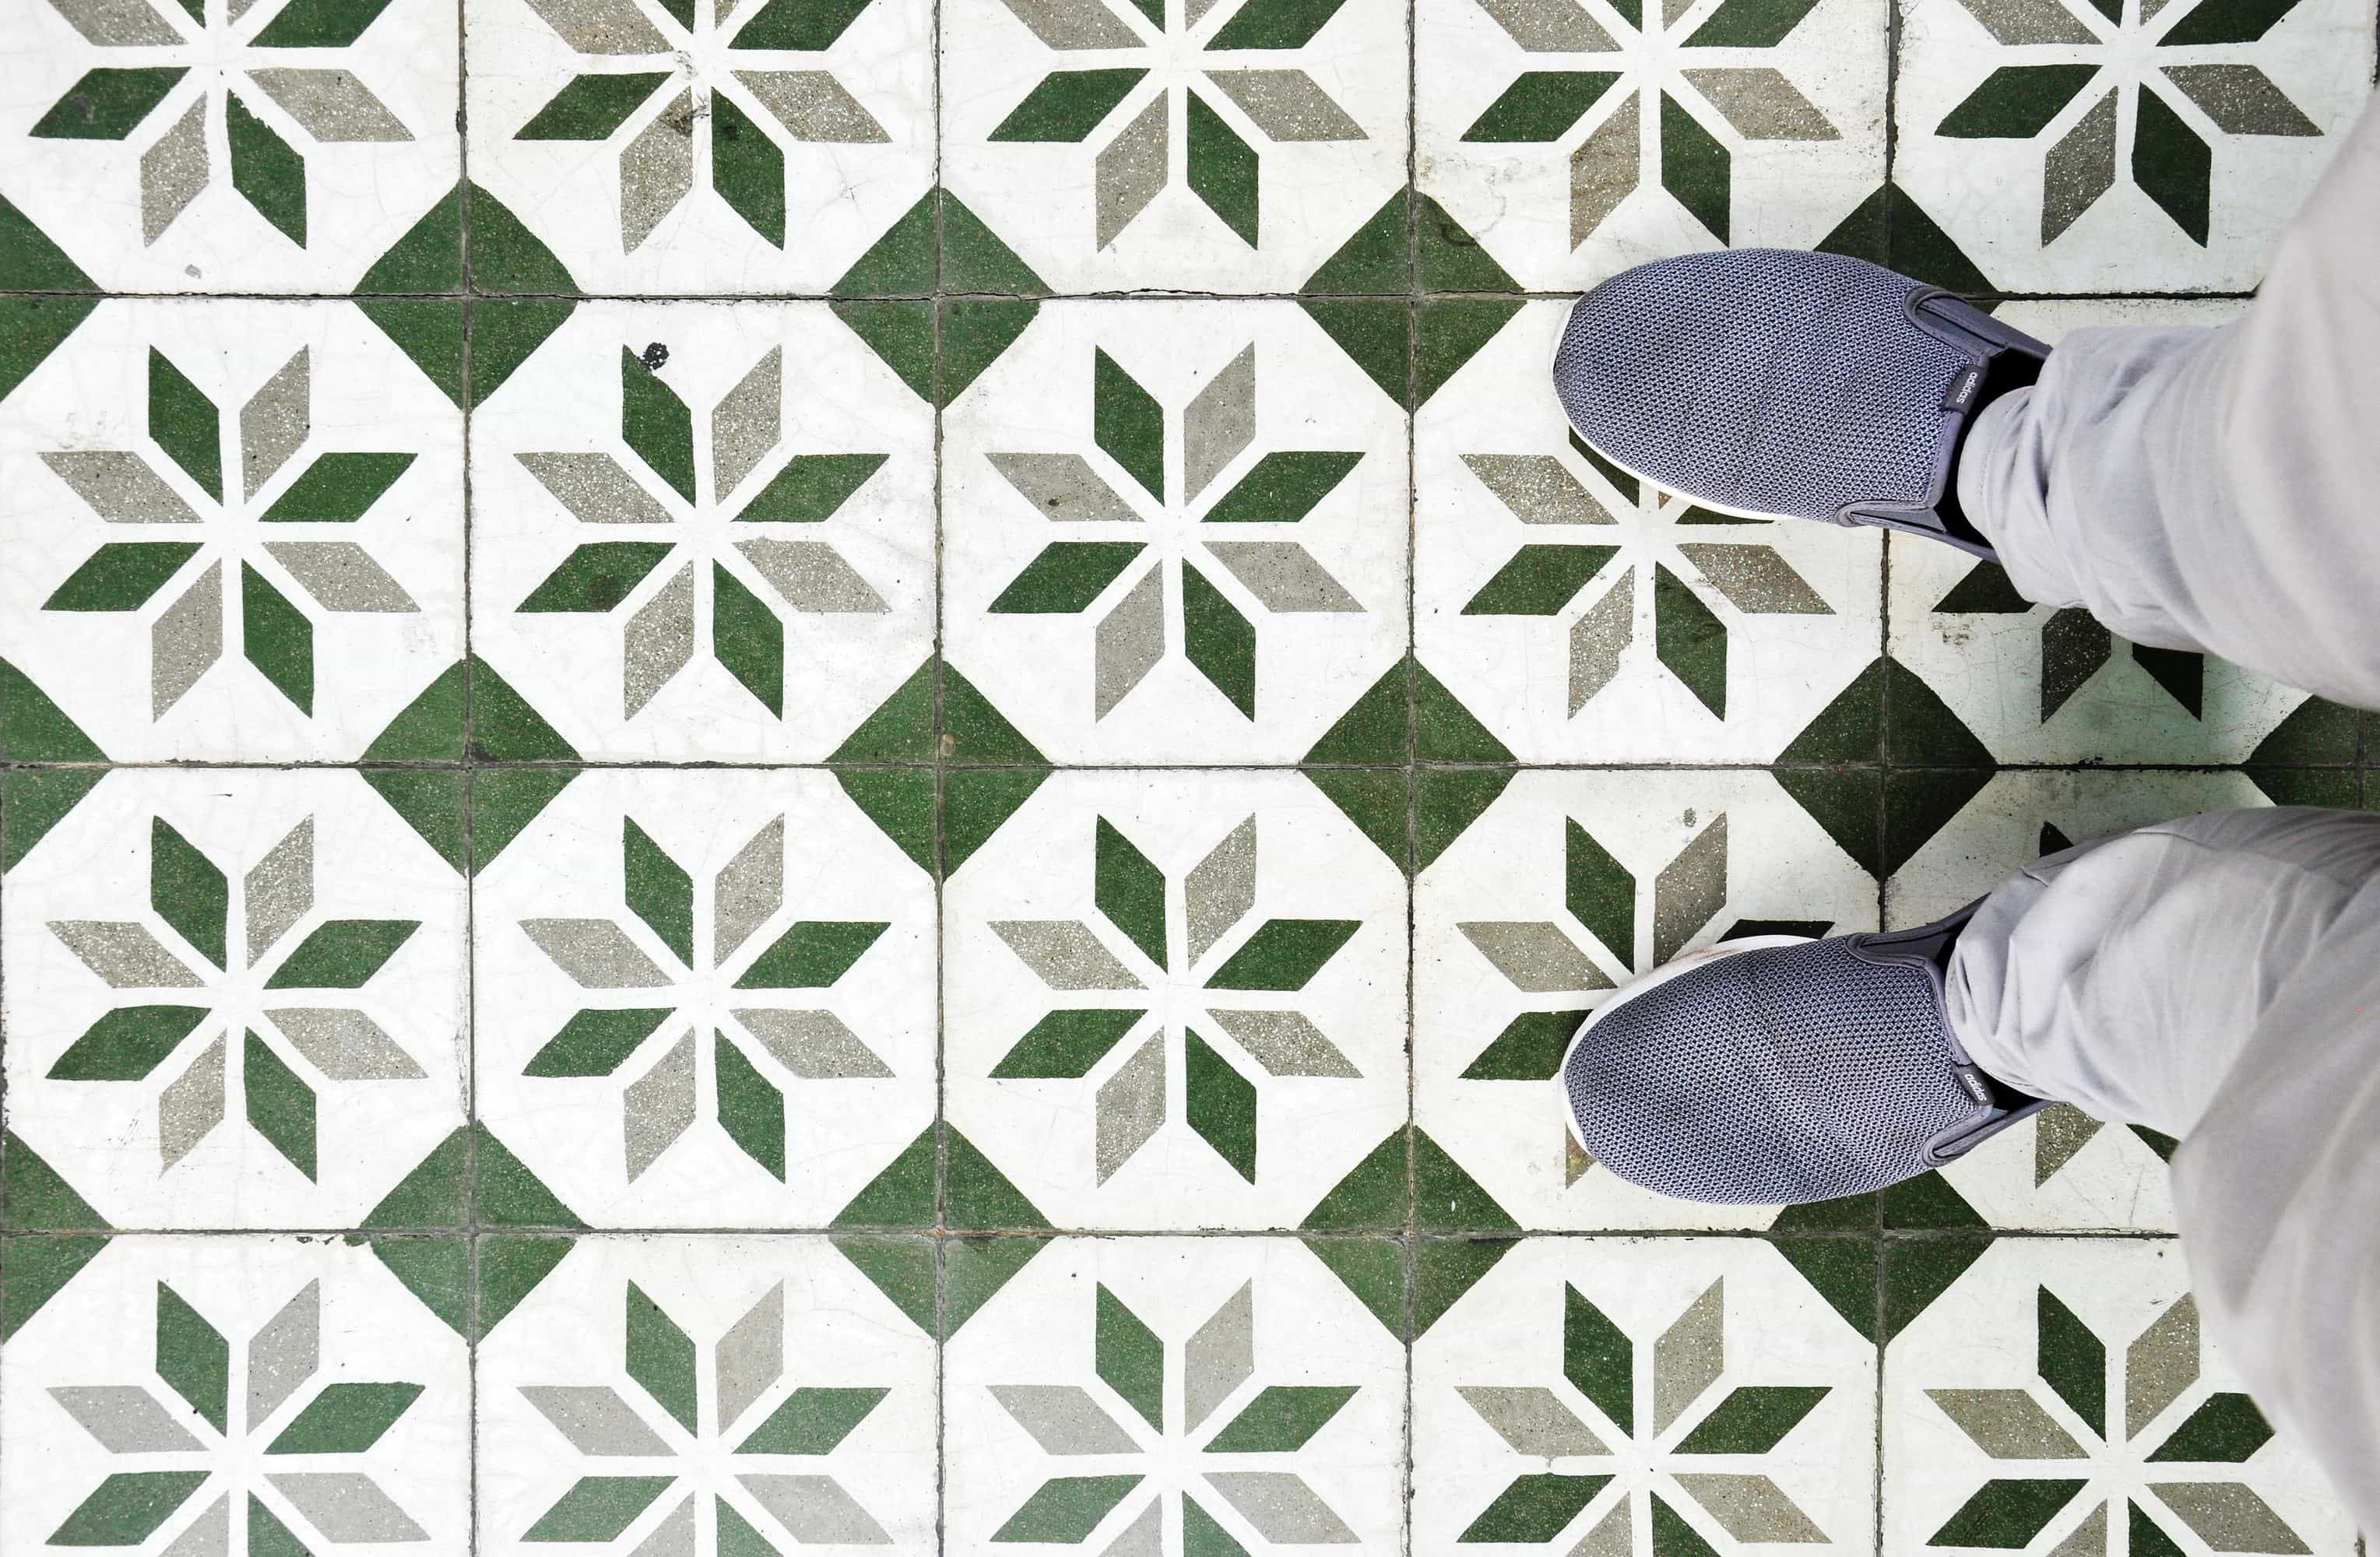 tile floor and shoes